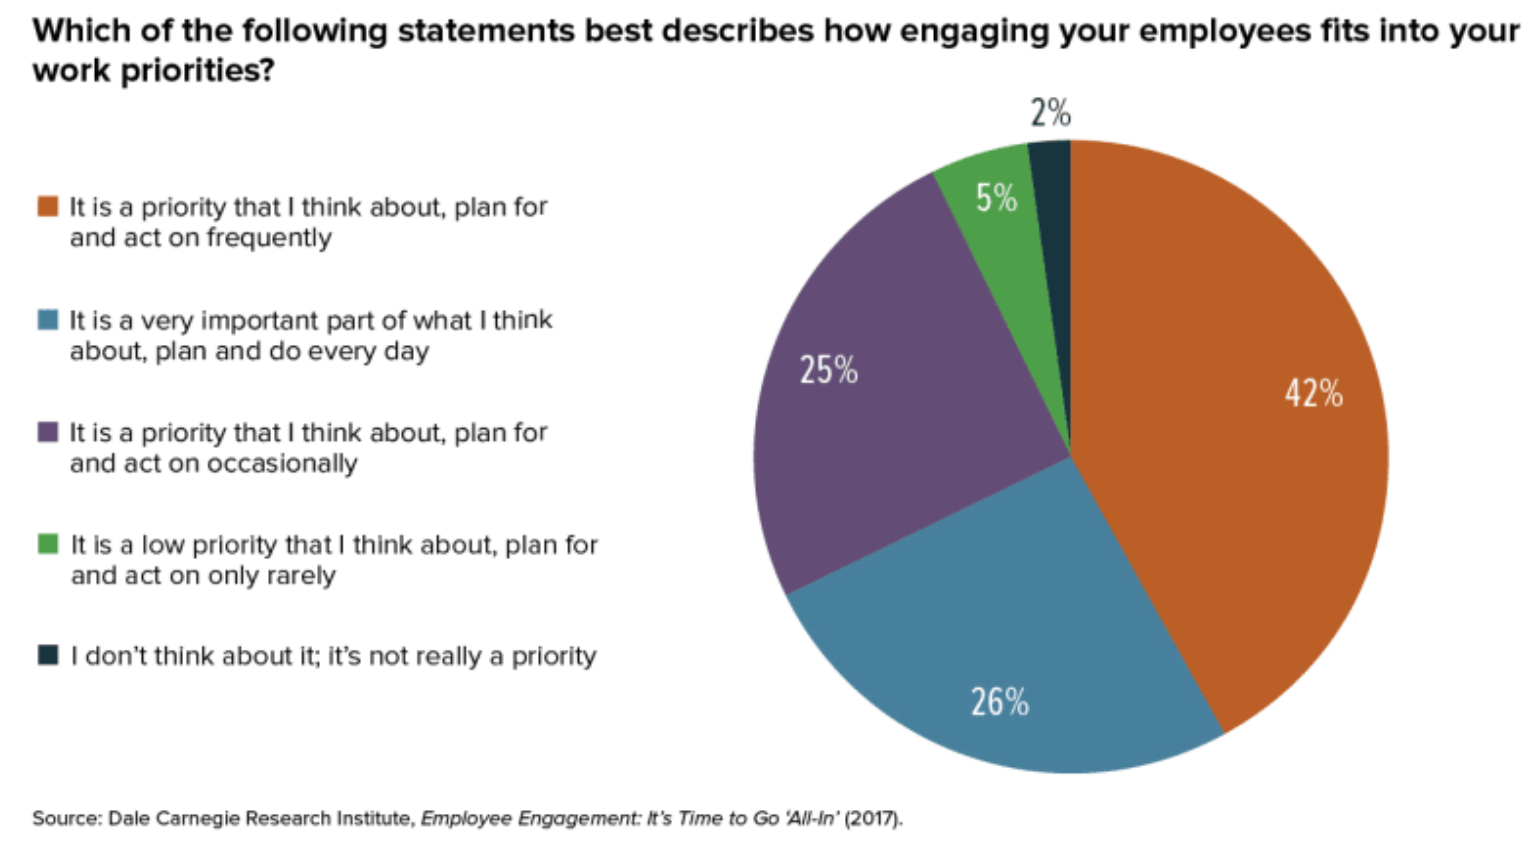 Prioitizing engaging employees